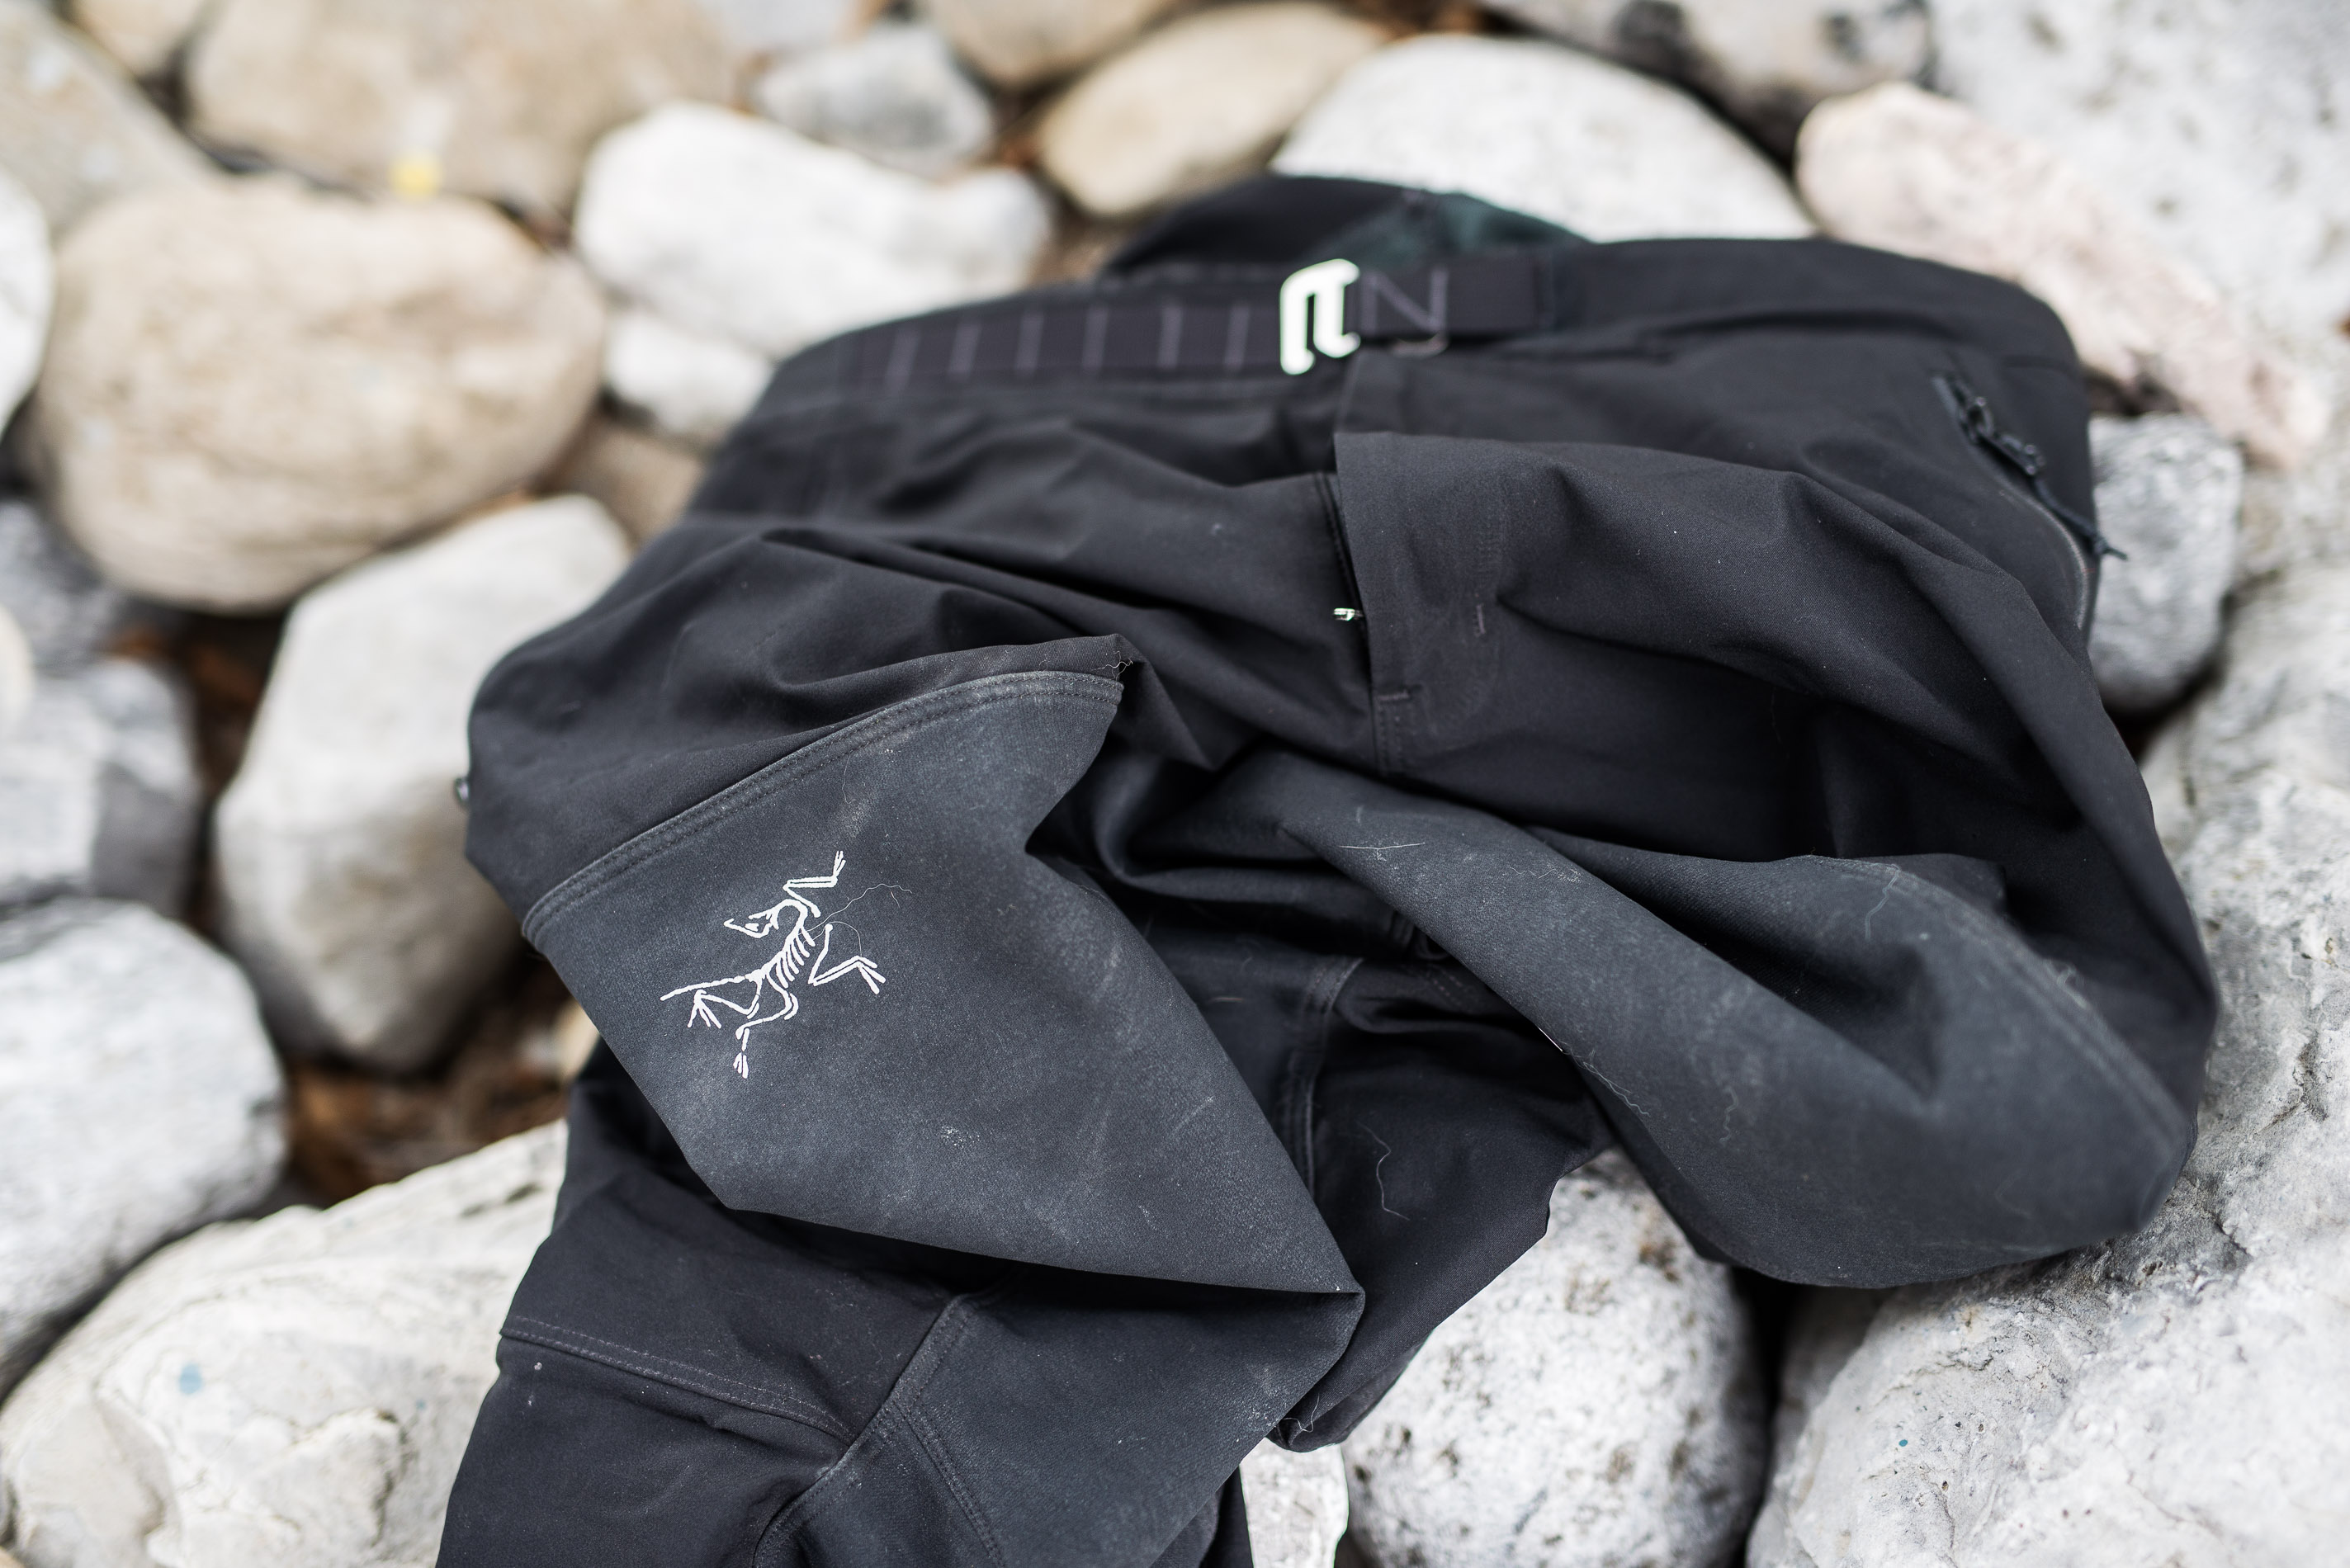 Review: Arc'teryx Gamma Rock pant